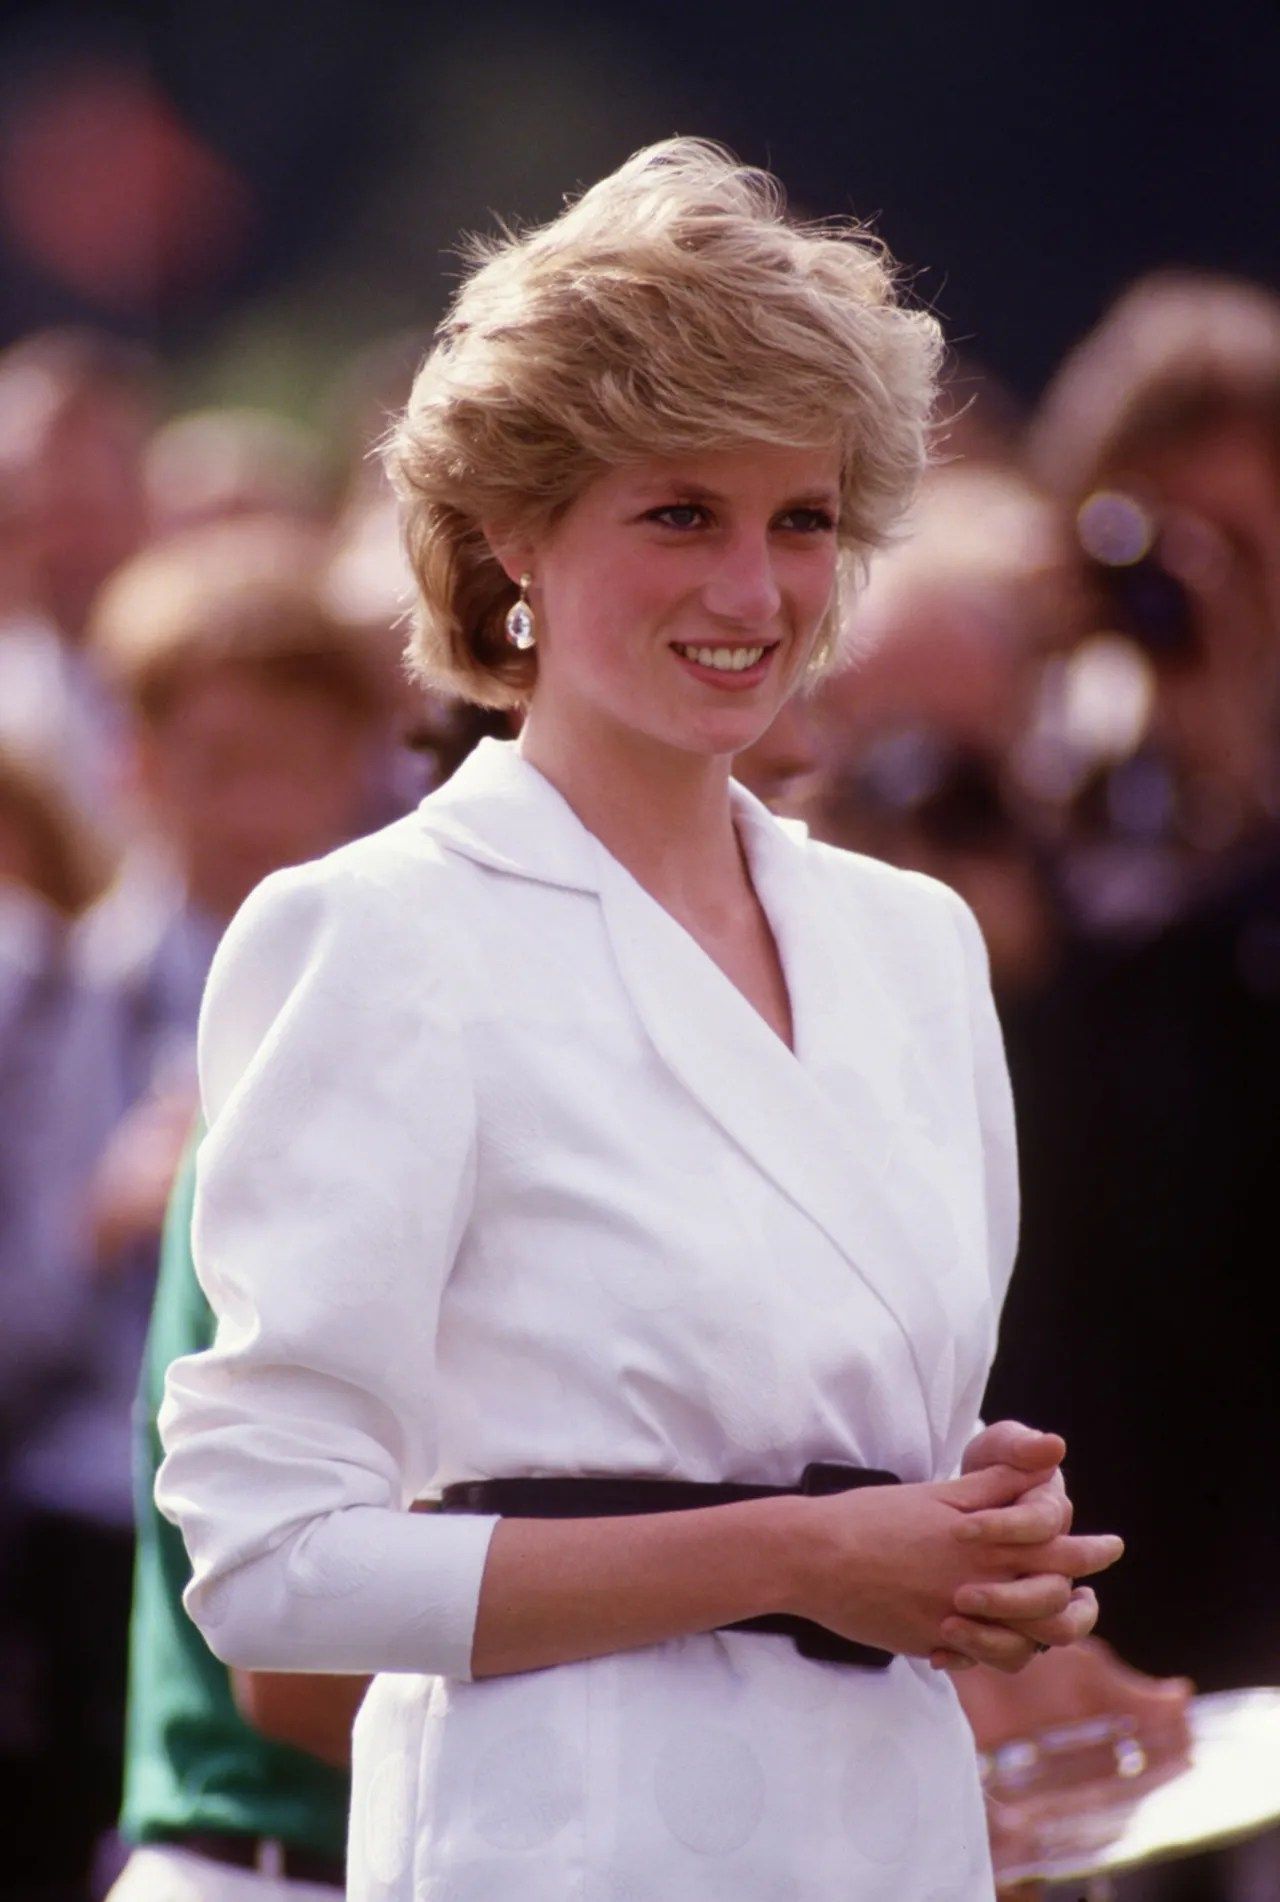 Remembering Princess Diana on Her 52nd Birthday